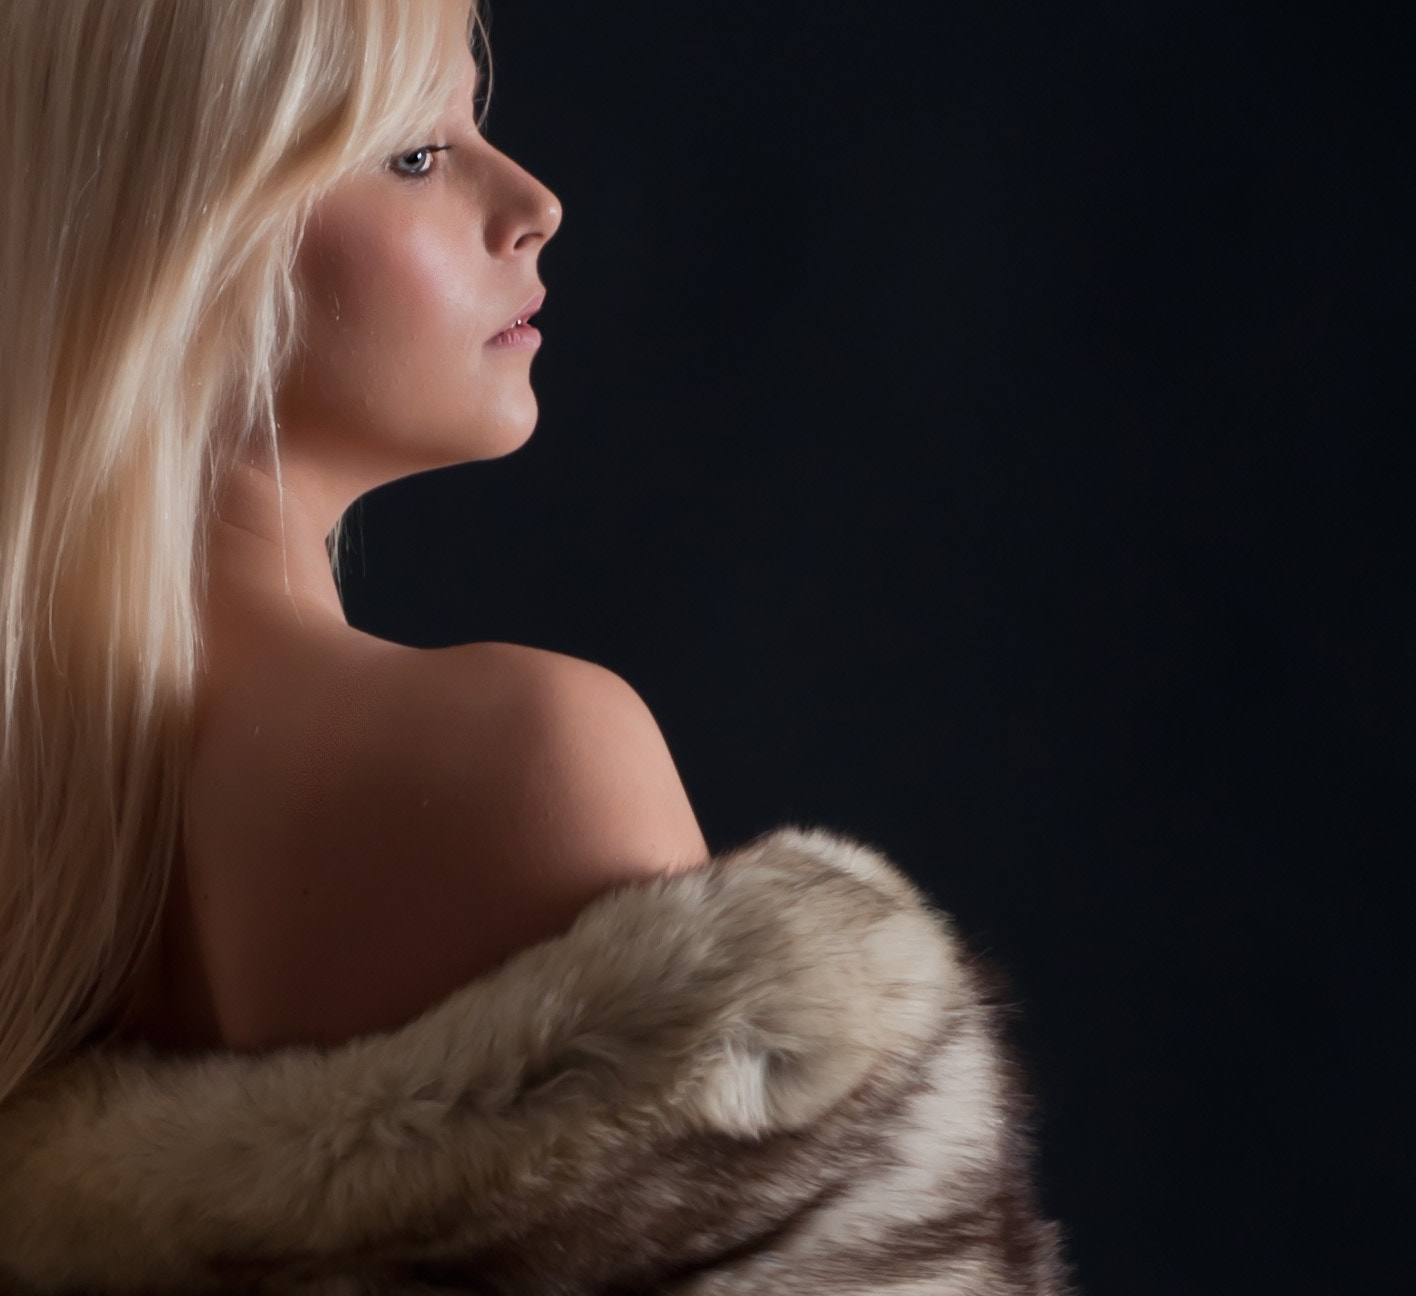 Photograph Model: Camilla by Lars Risvig Petersen on 500px